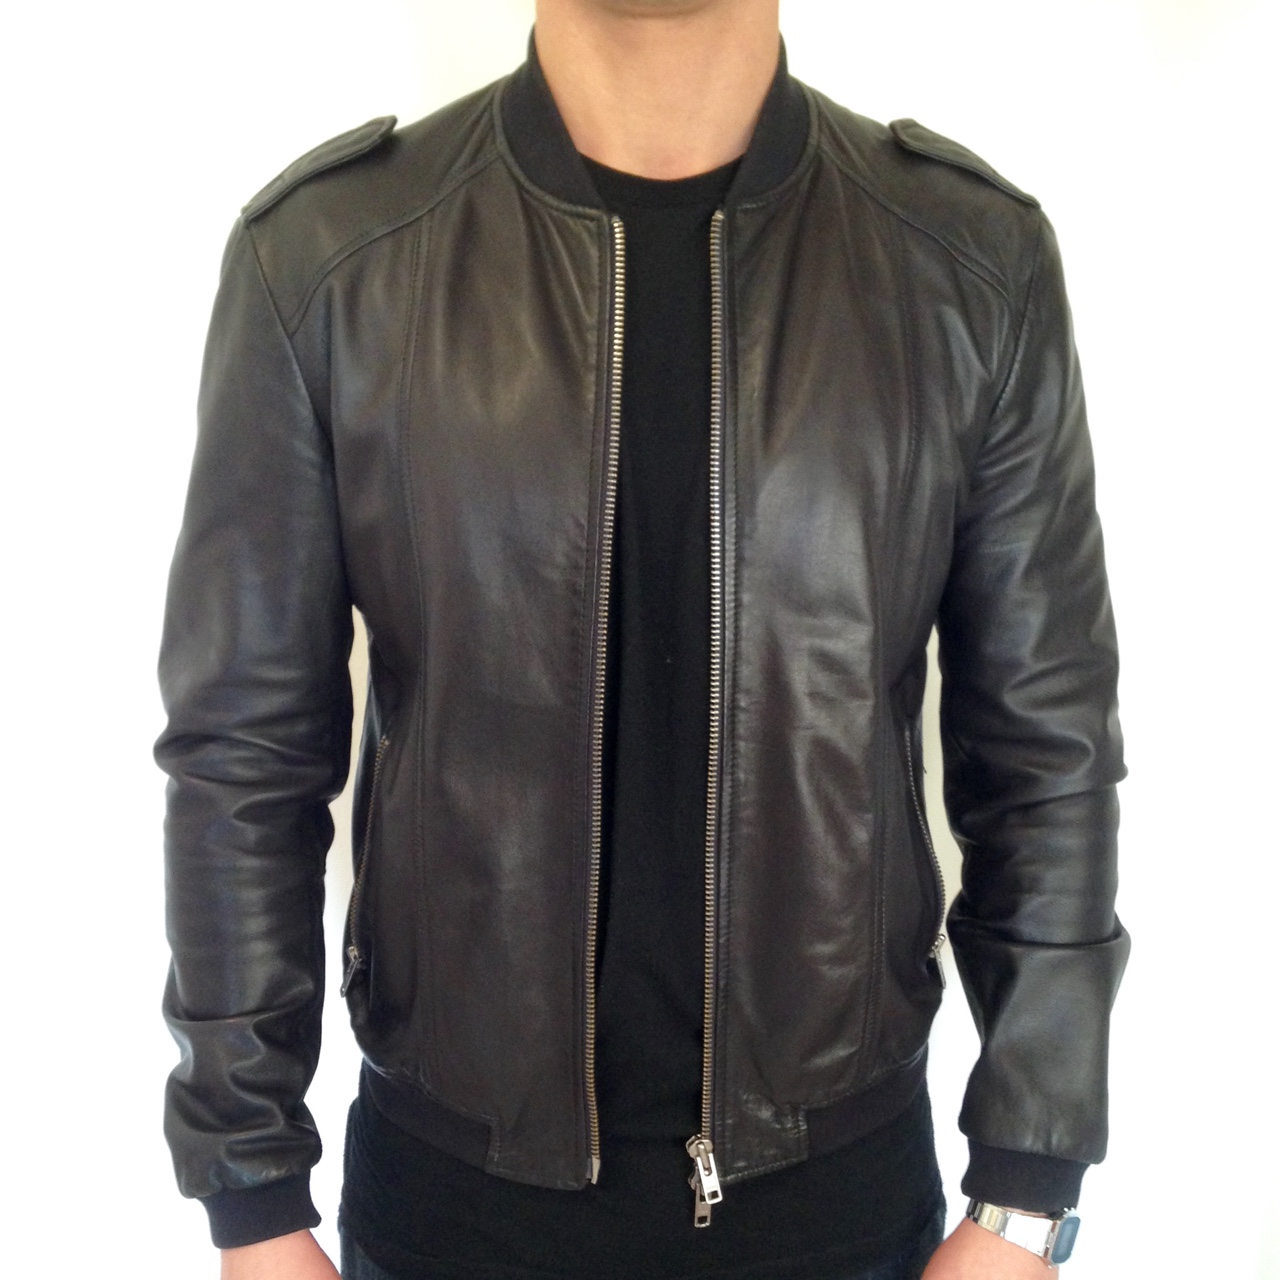 official photos 7ad60 a8069 Giubbotto Bomber pelle Mauro Grifoni nero Tg 50... - Depop